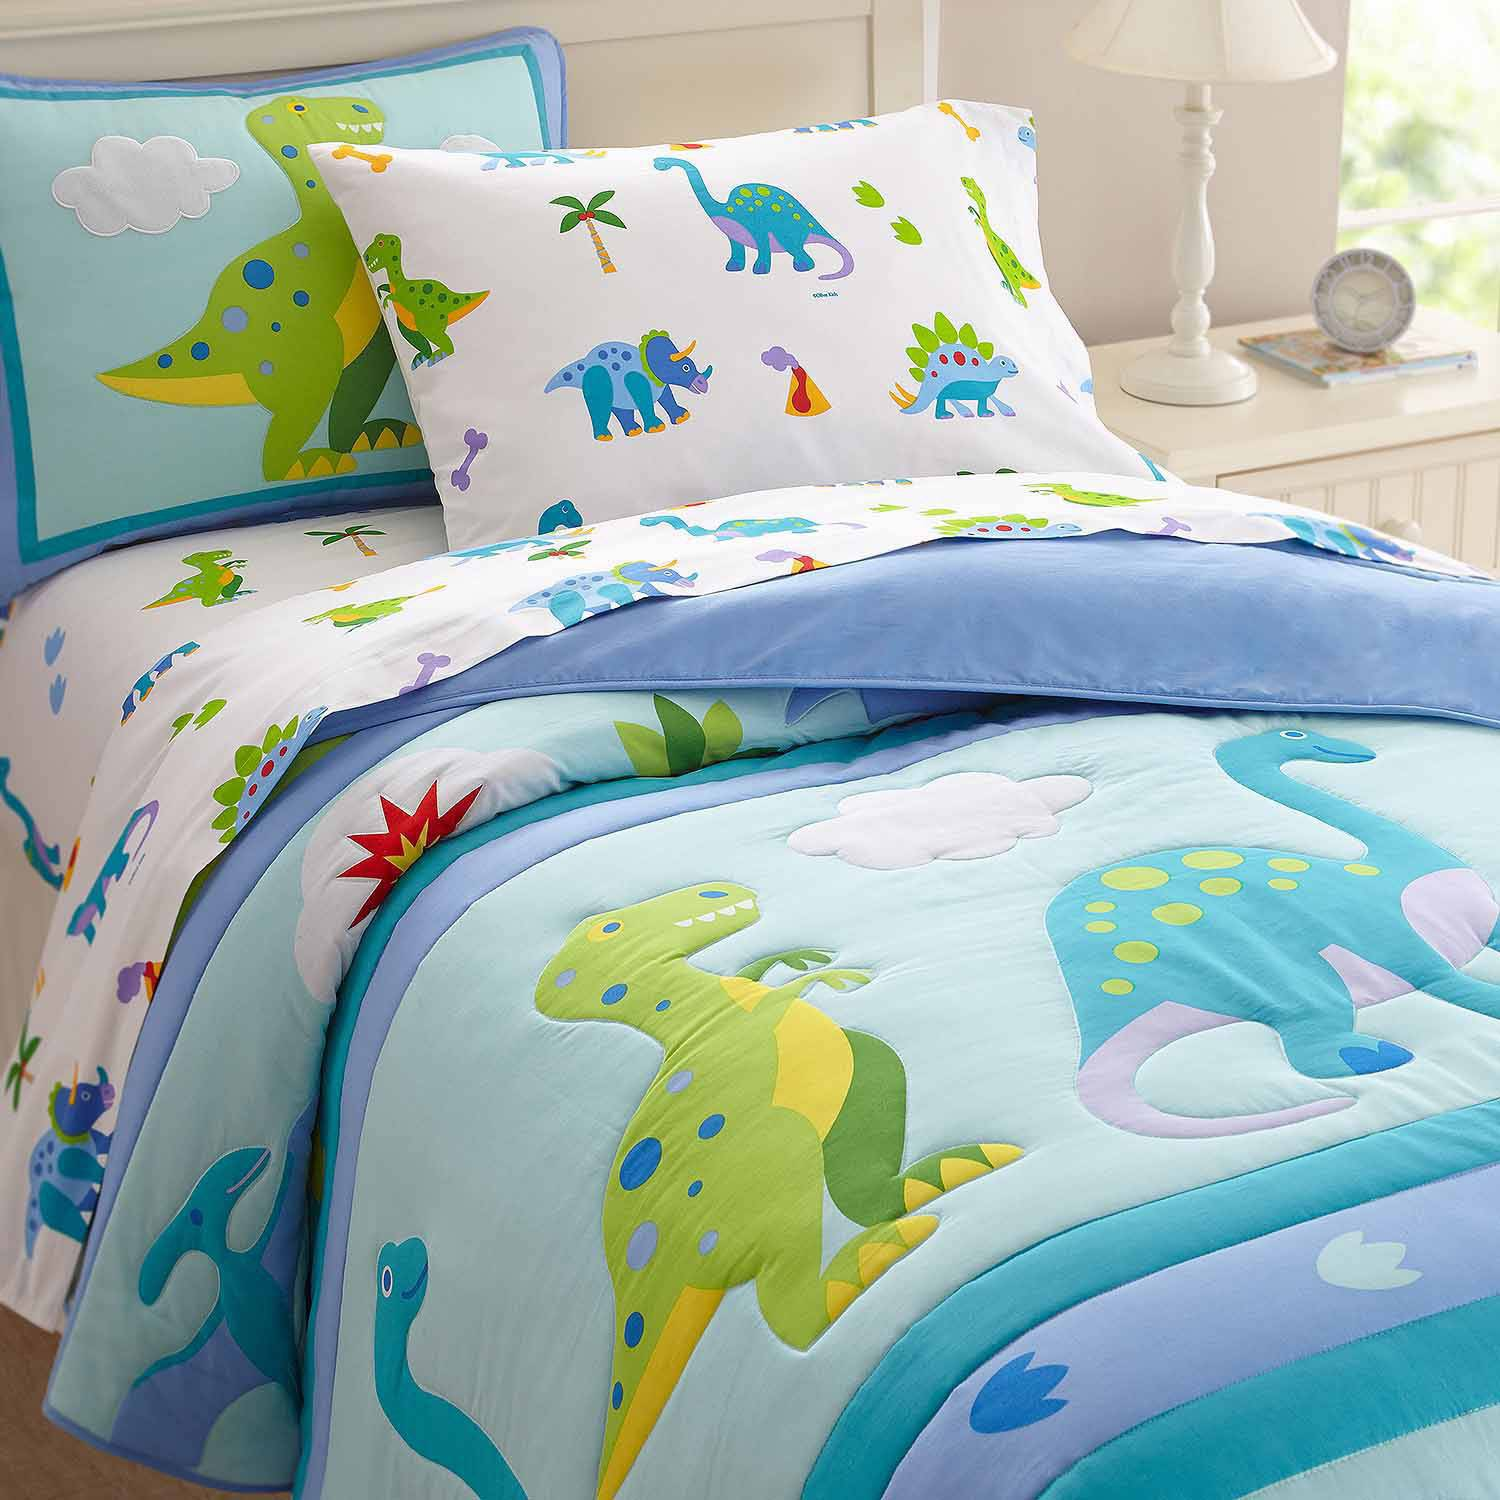 dinosaur bedroom.  Olive Kids Dinosaur Land Bedding Comforter Set Walmart com